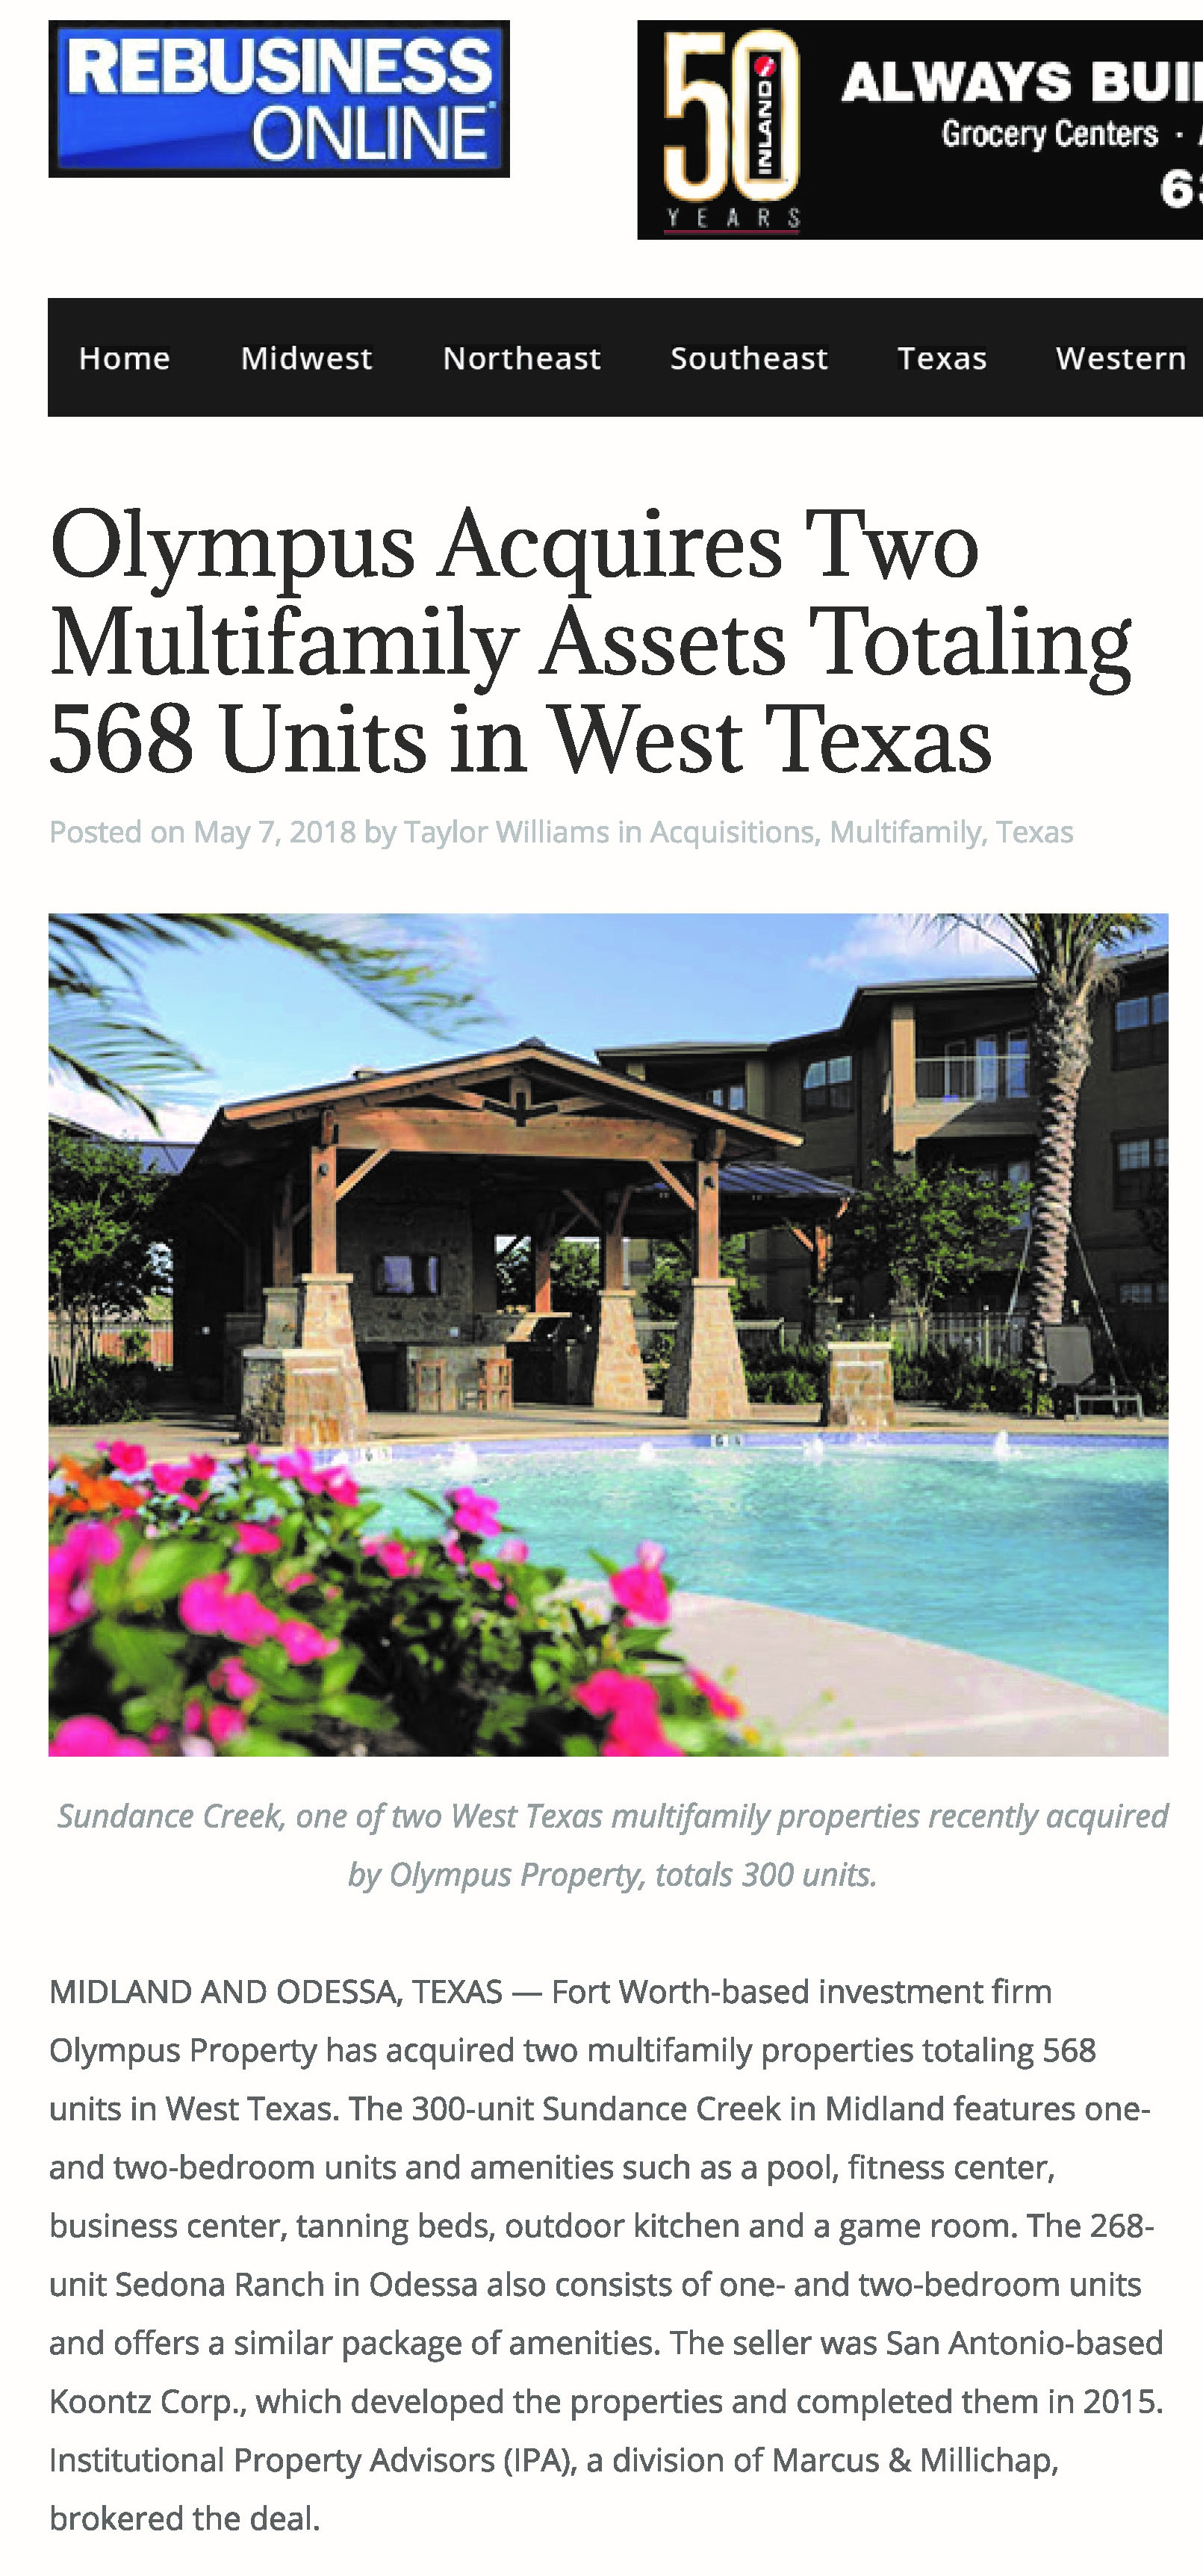 olympus-acquires-two-multifamily-assets-totaling-568-units-in-west-texas-rebusinessonline_page_1